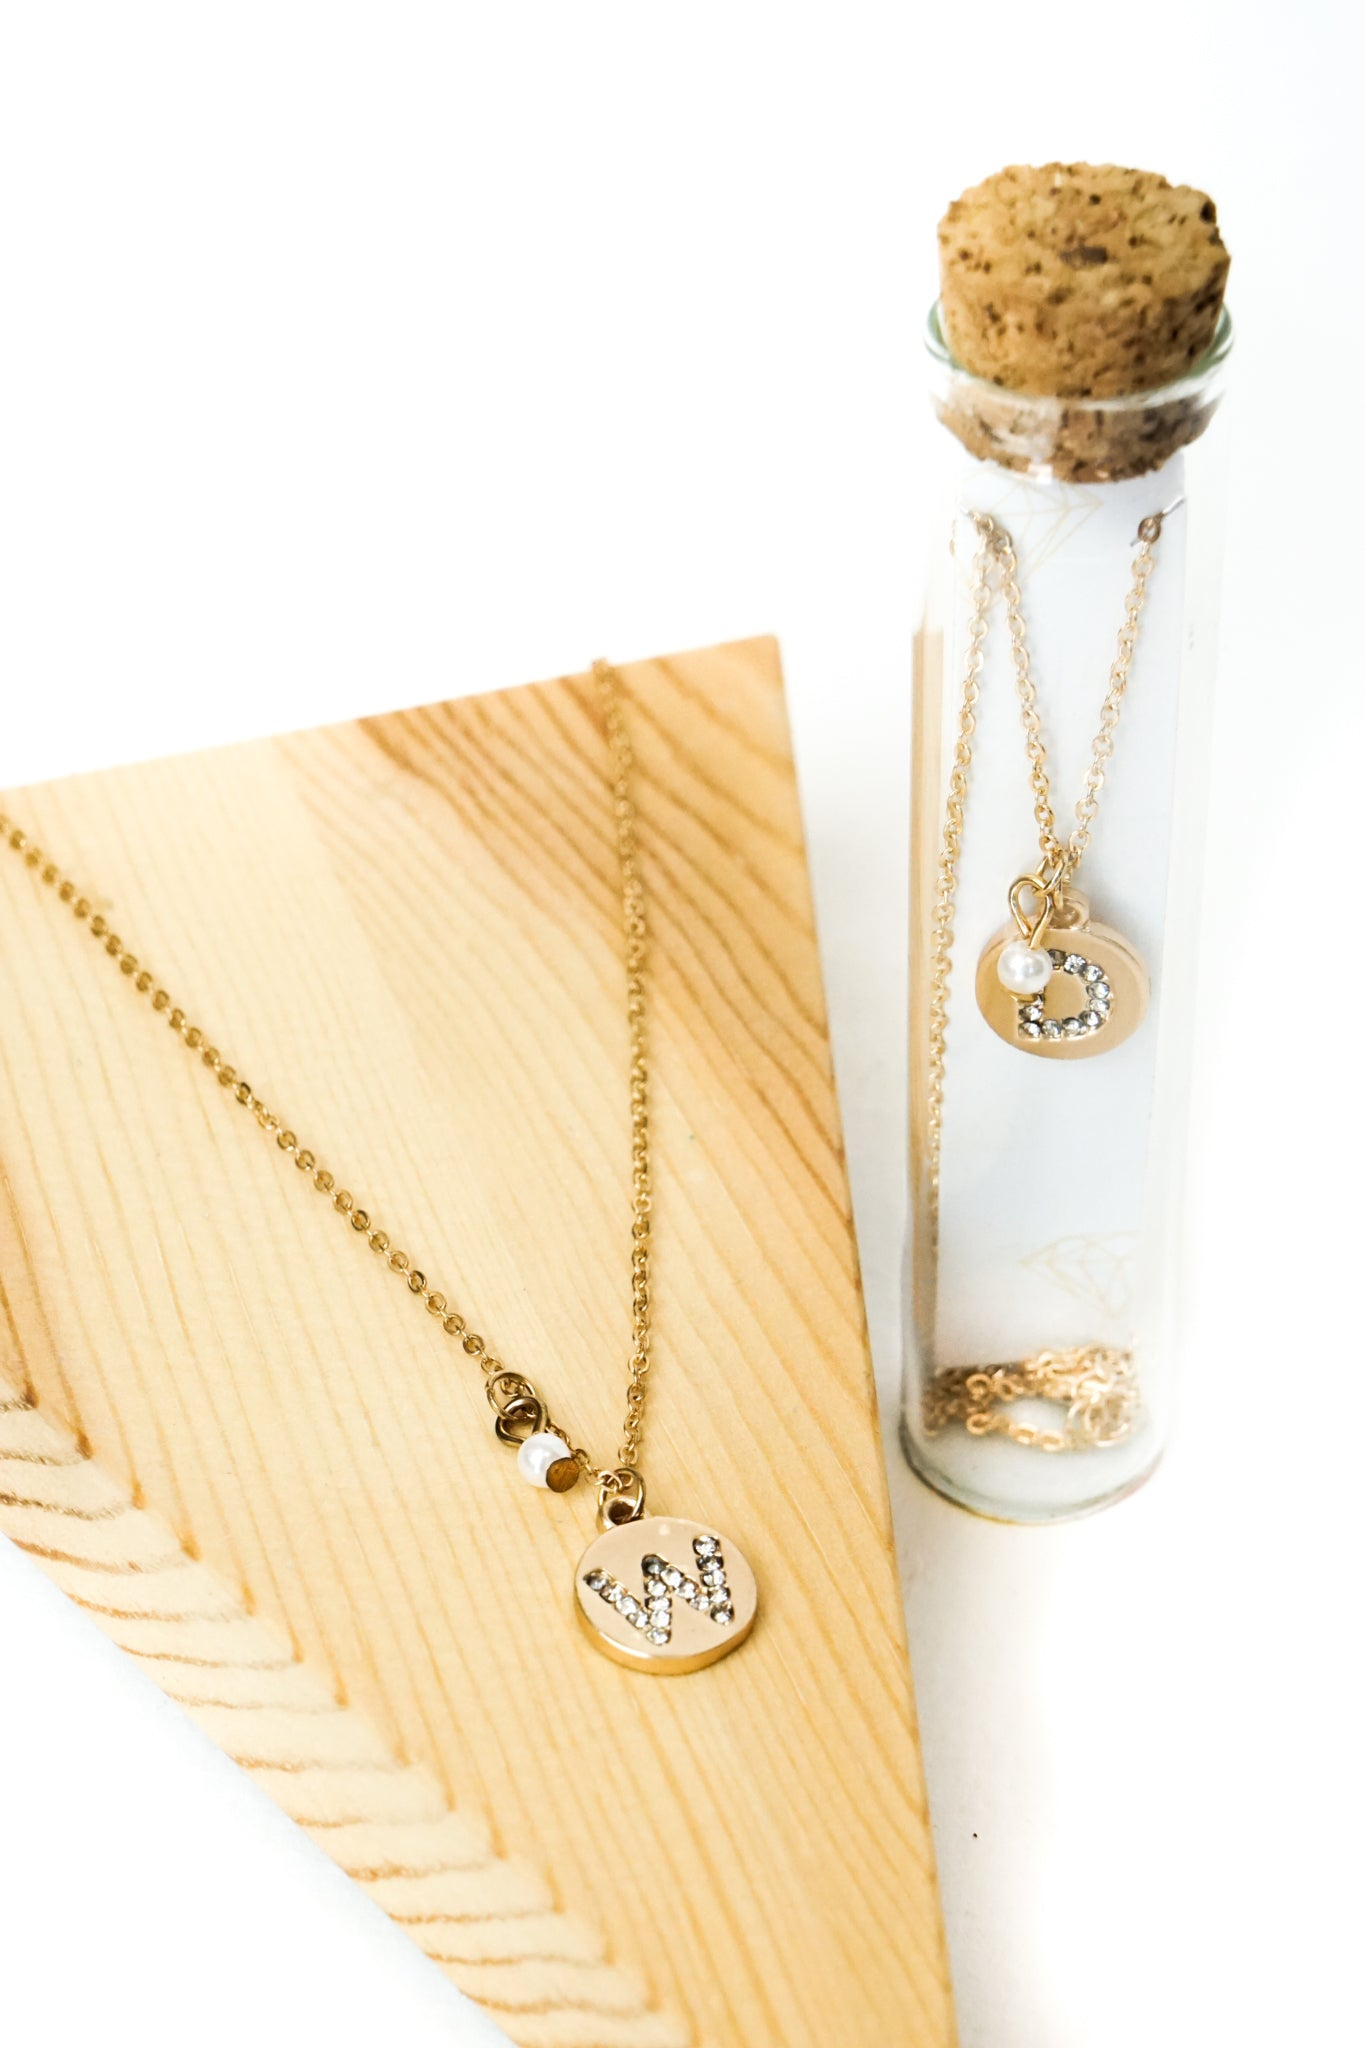 Monogram Necklaces (Multiple Styles)